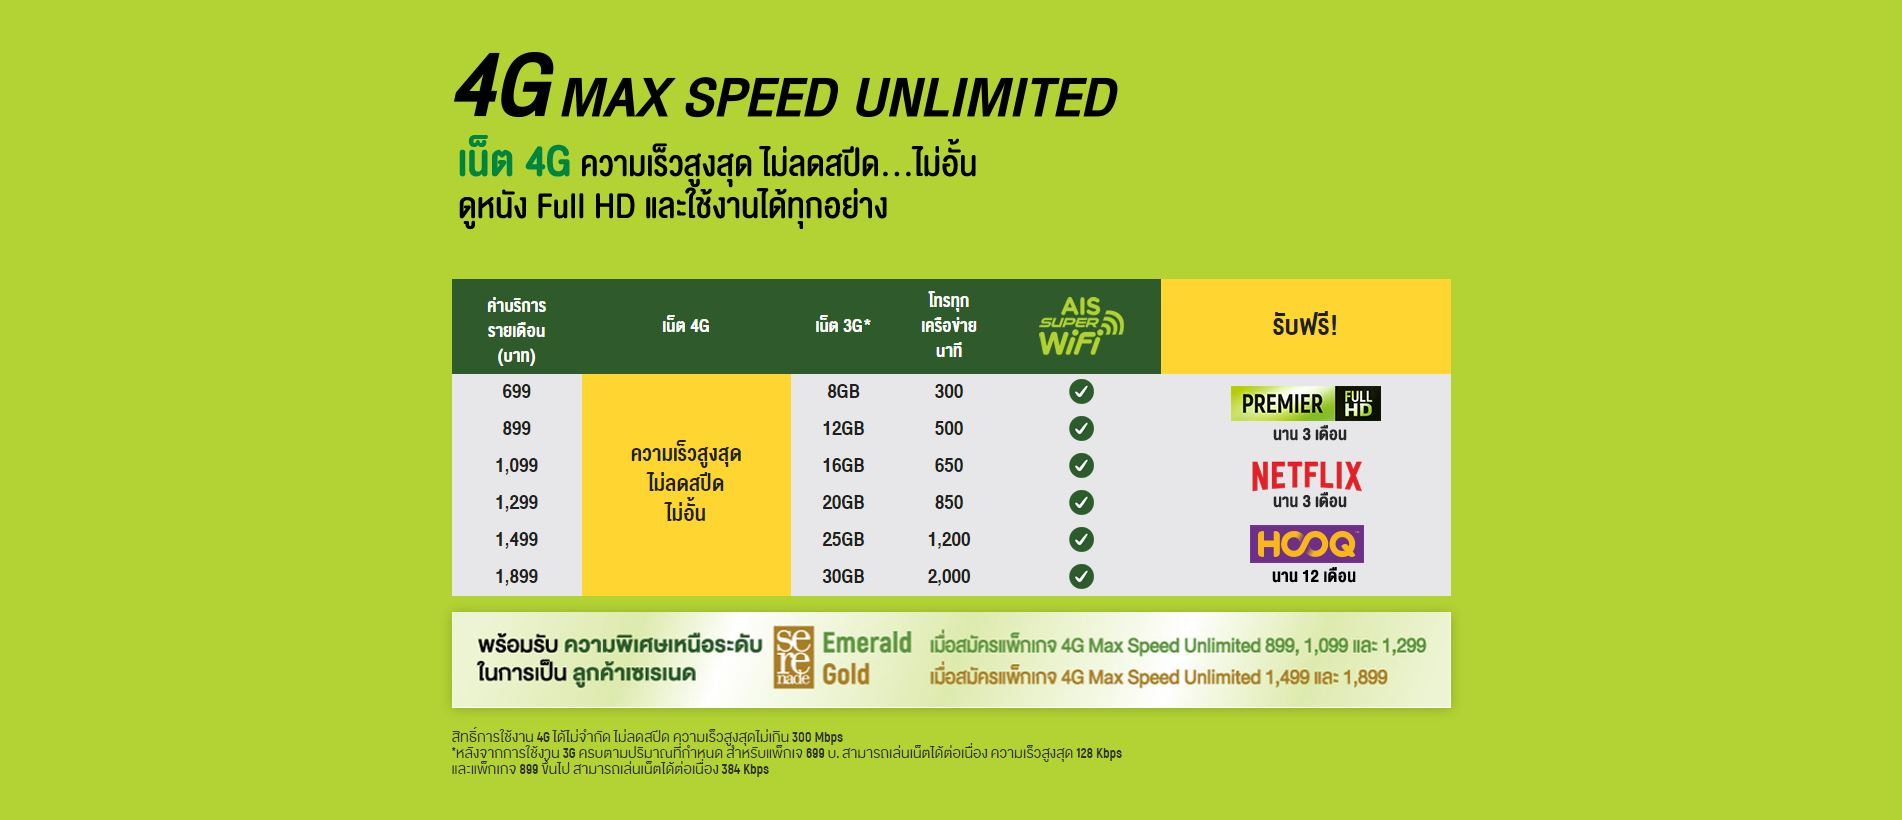 4g Max Speed Unlimited Ais